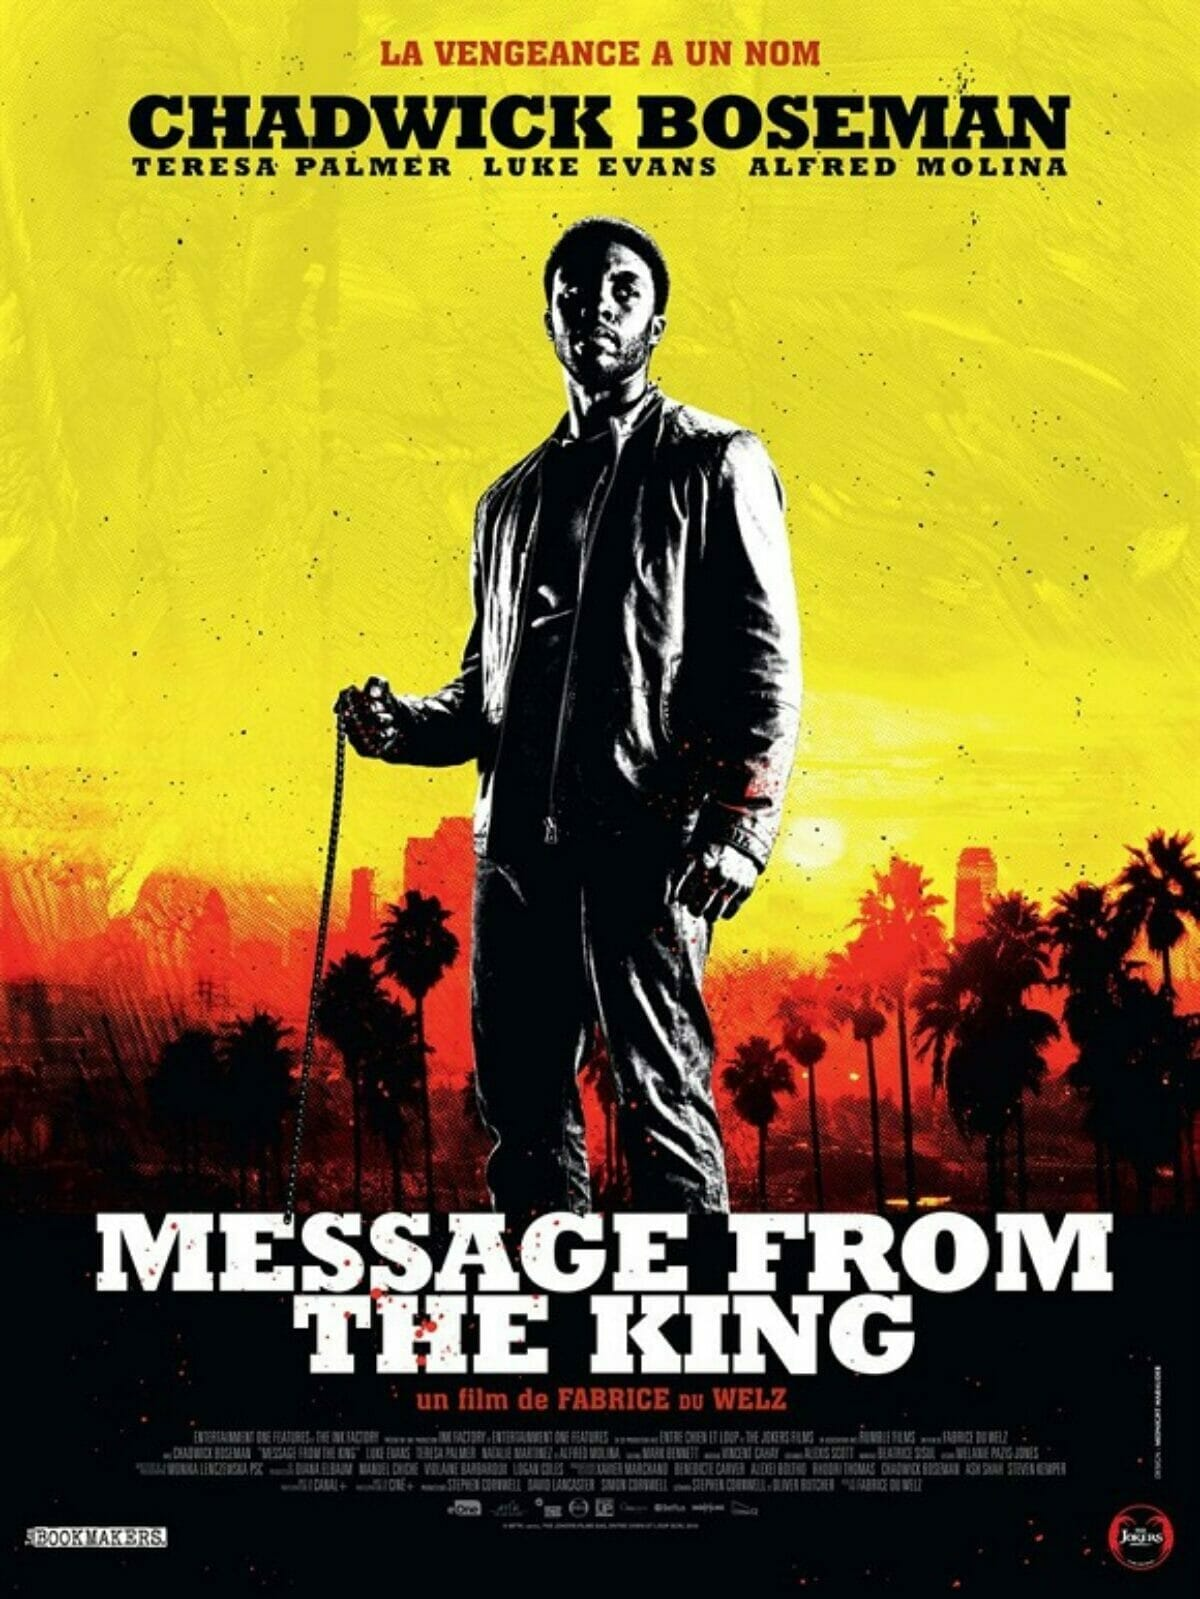 Message-from-the-king-poster